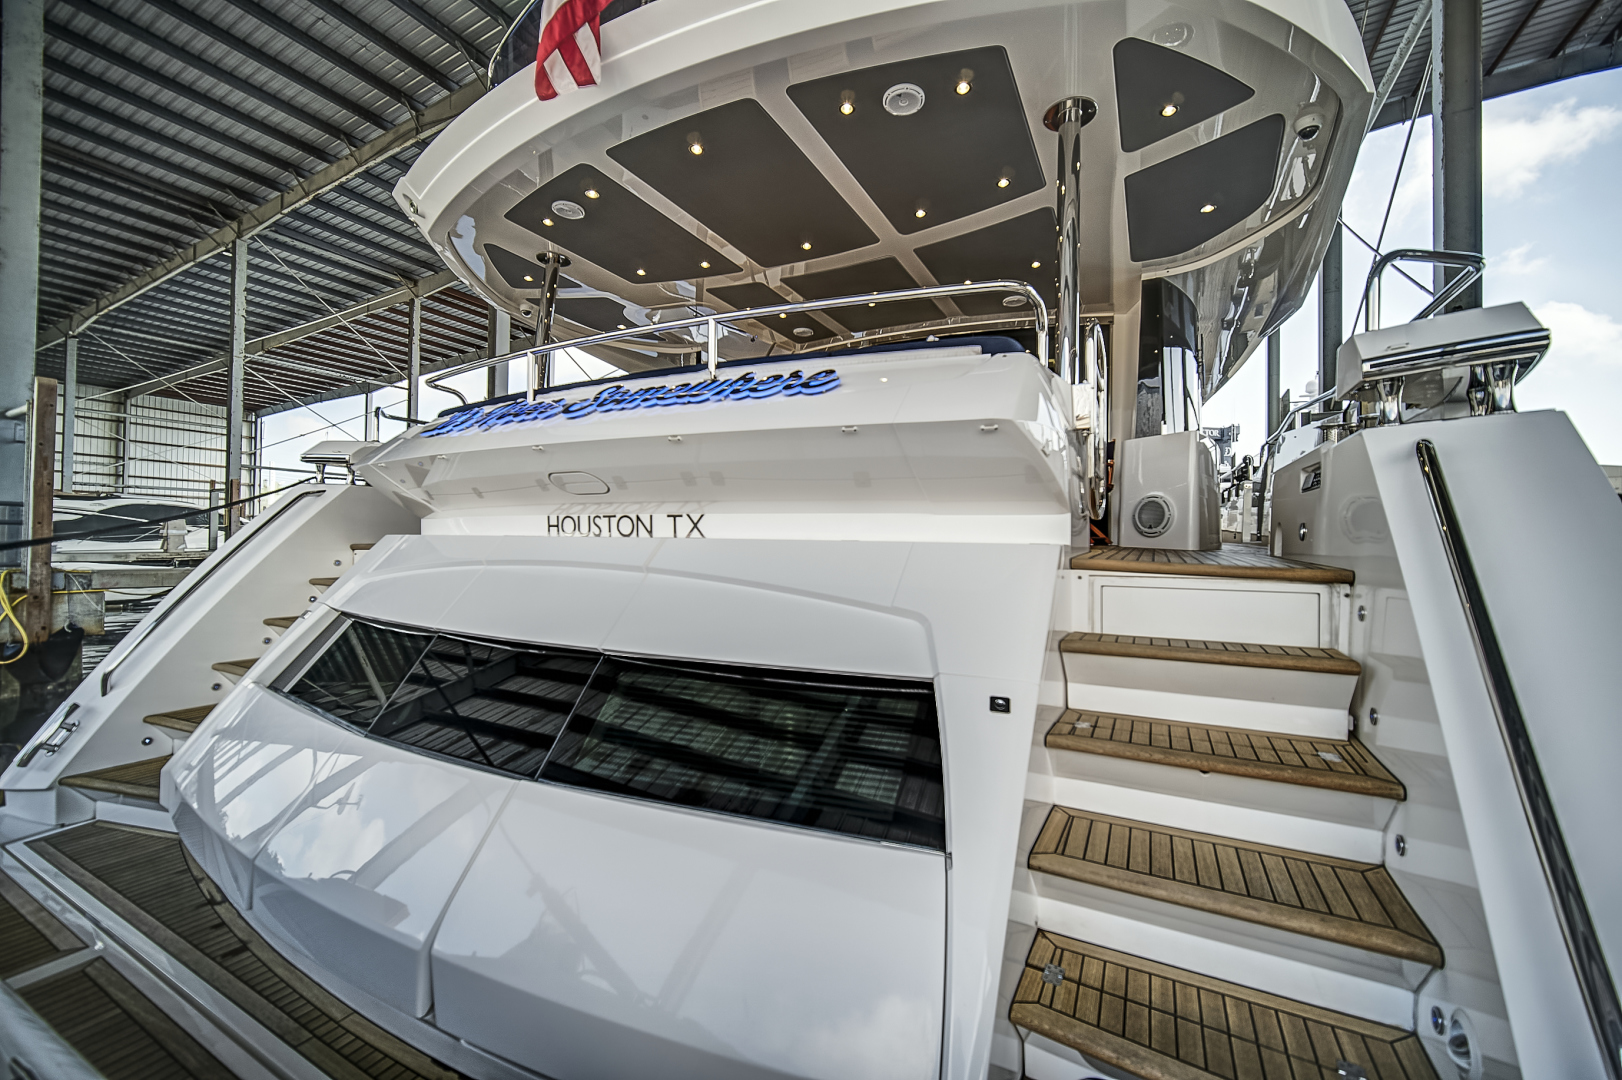 Sunseeker-86 Yacht 2019-Its Noon Somewhere Fort Lauderdale-Florida-United States-1556652 | Thumbnail